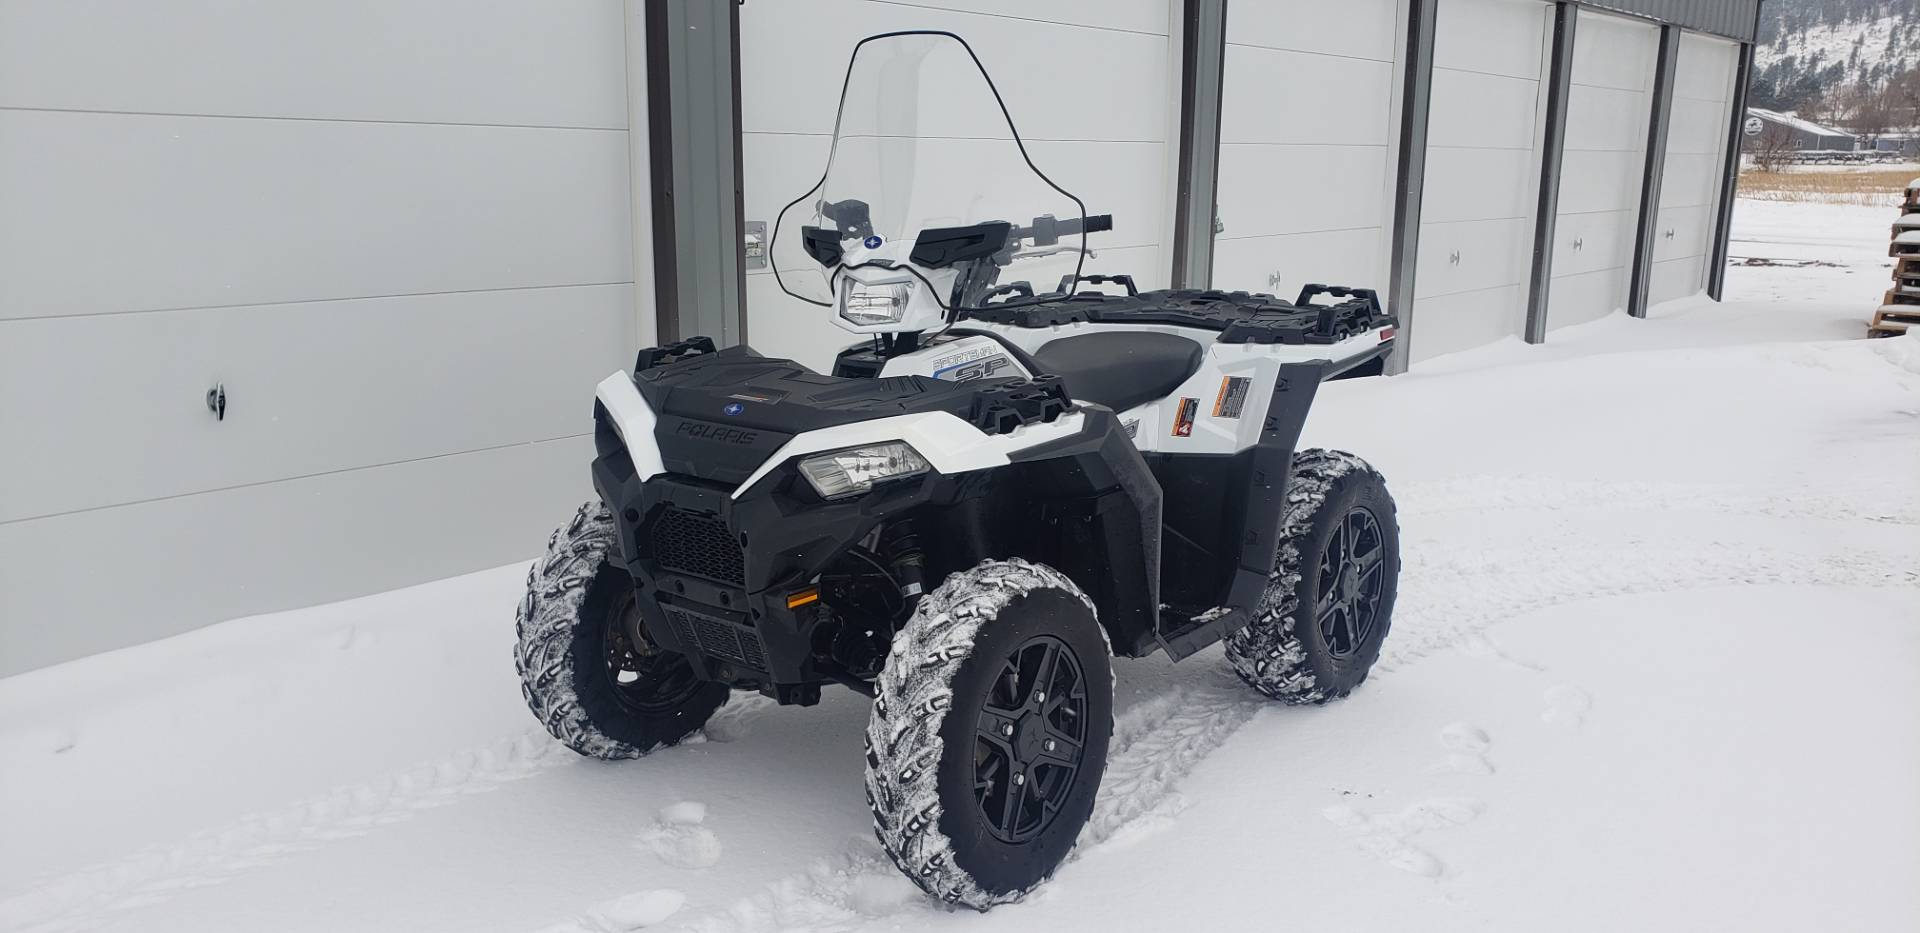 2019 Polaris Sportsman 850 SP in Rapid City, South Dakota - Photo 6